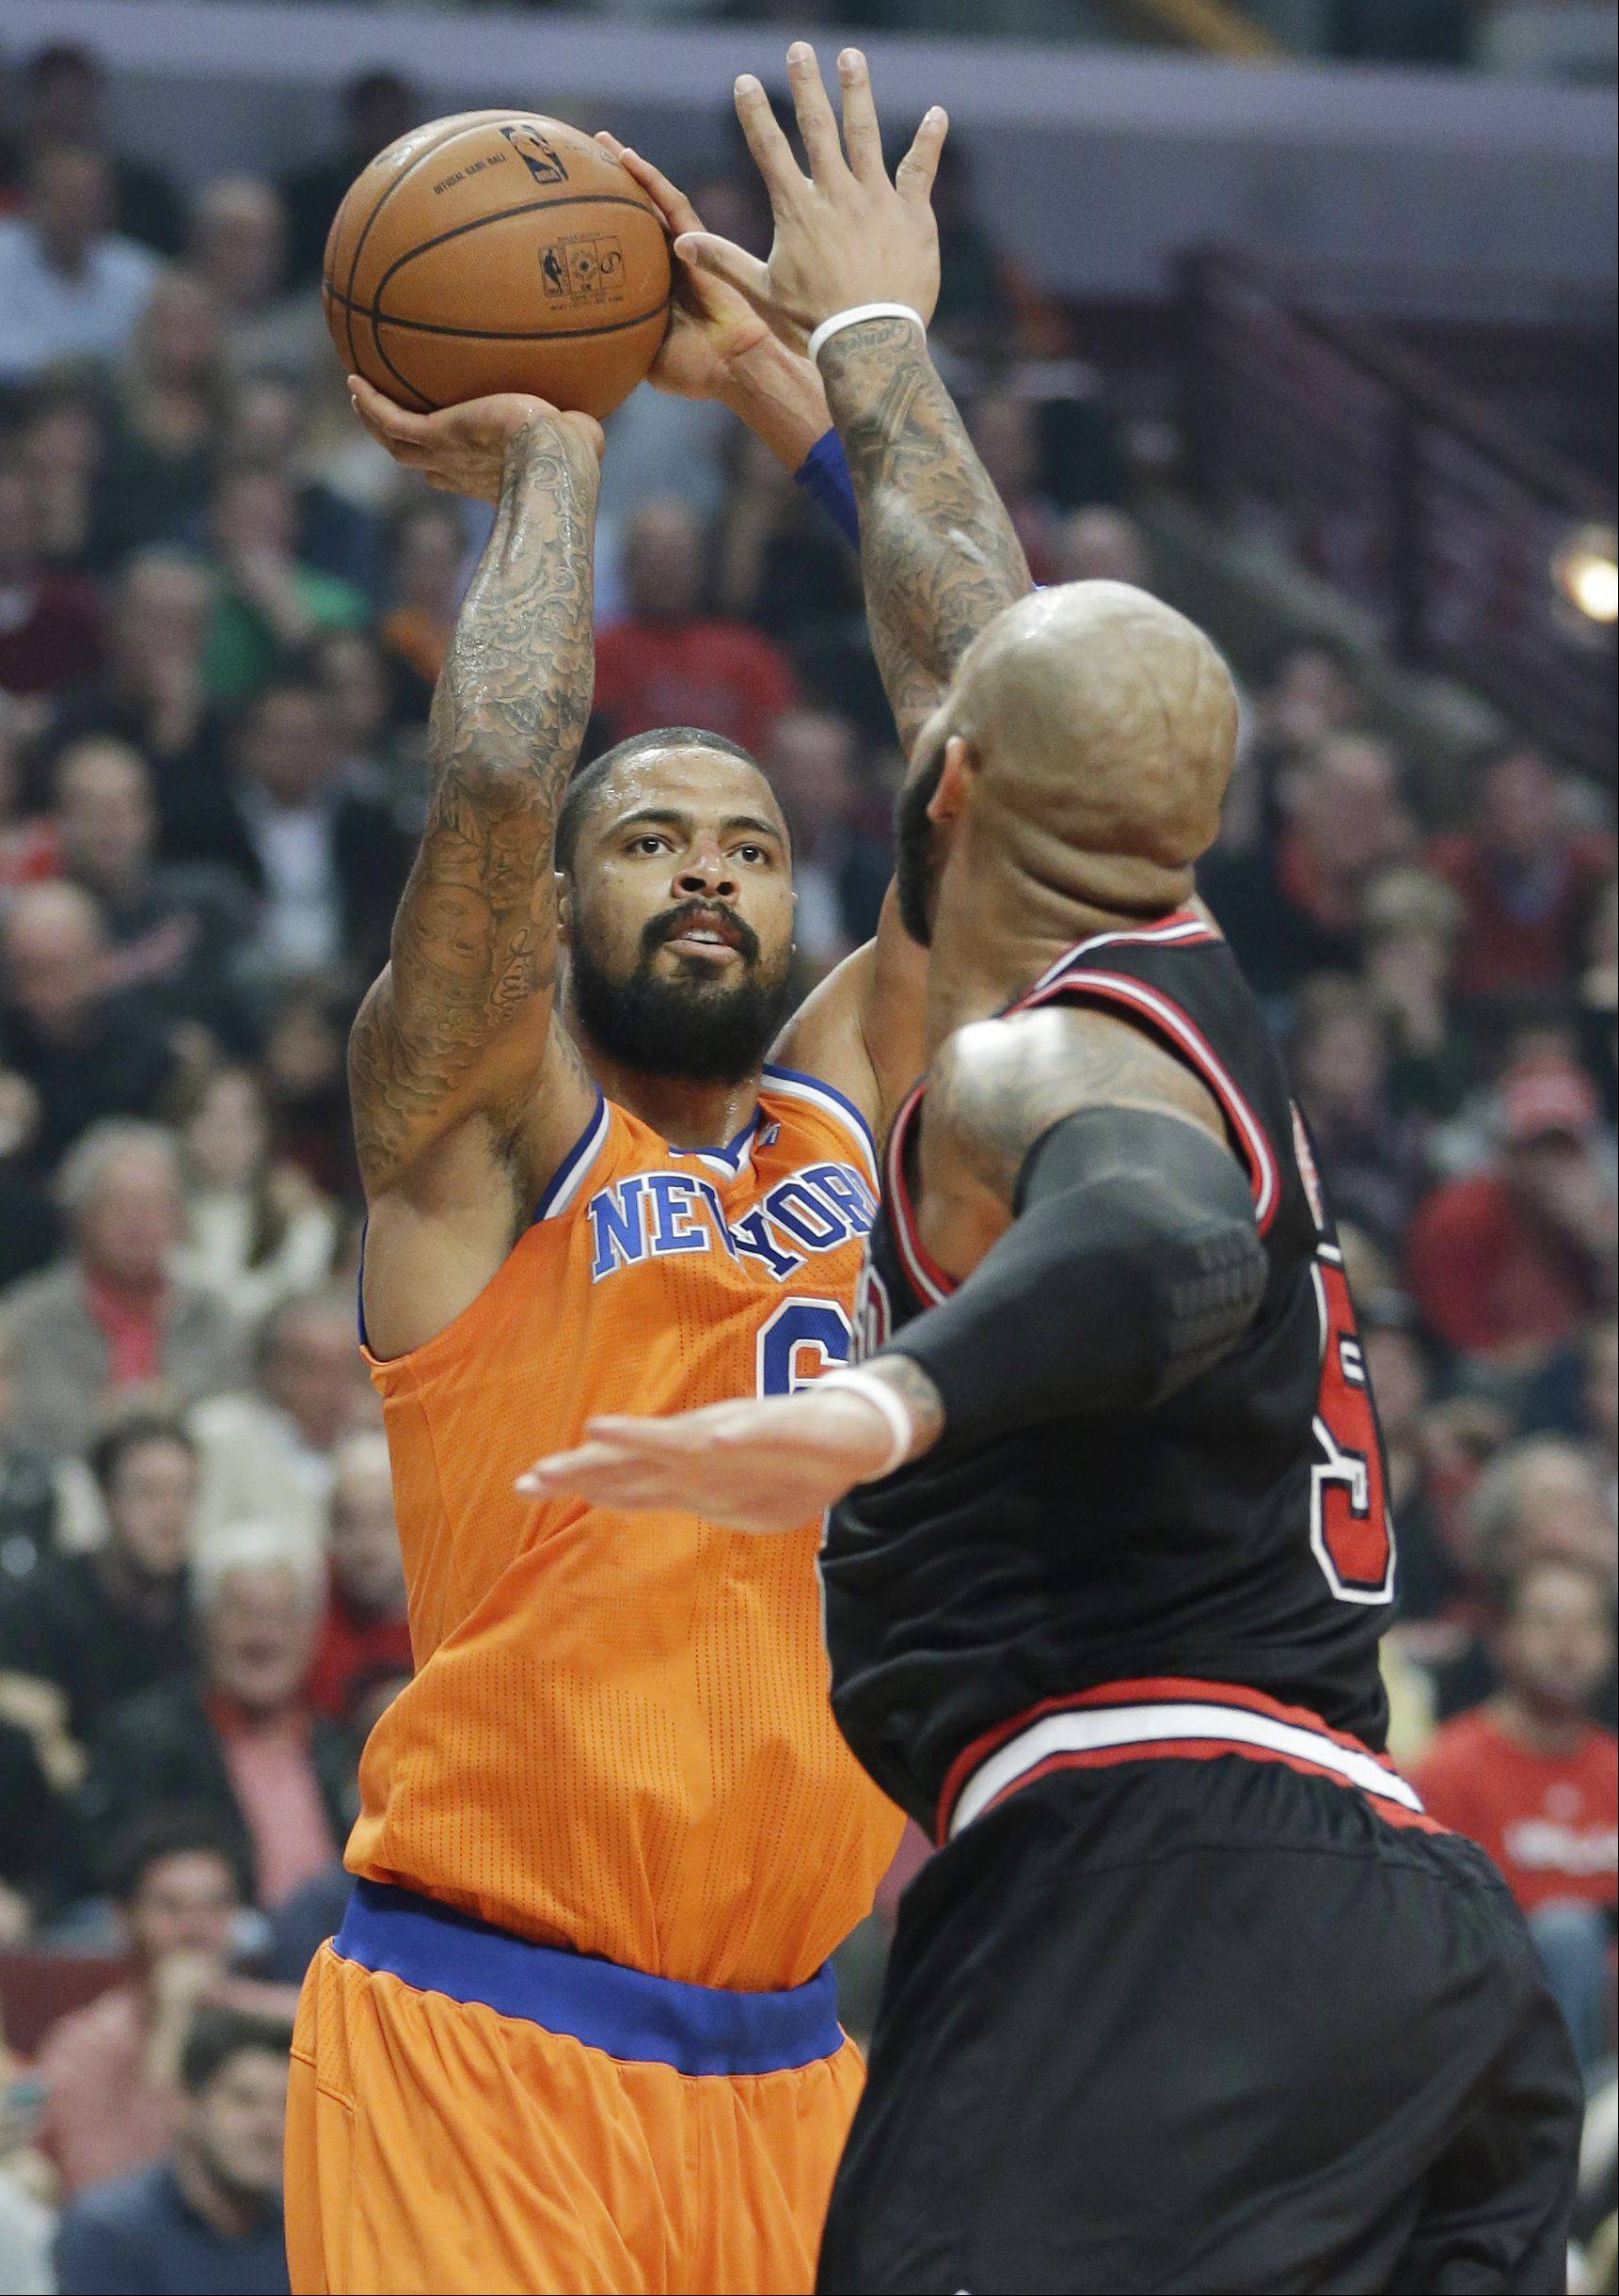 New York Knicks center Tyson Chandler, left, shoots over Chicago Bulls forward Carlos Boozer during the first half.